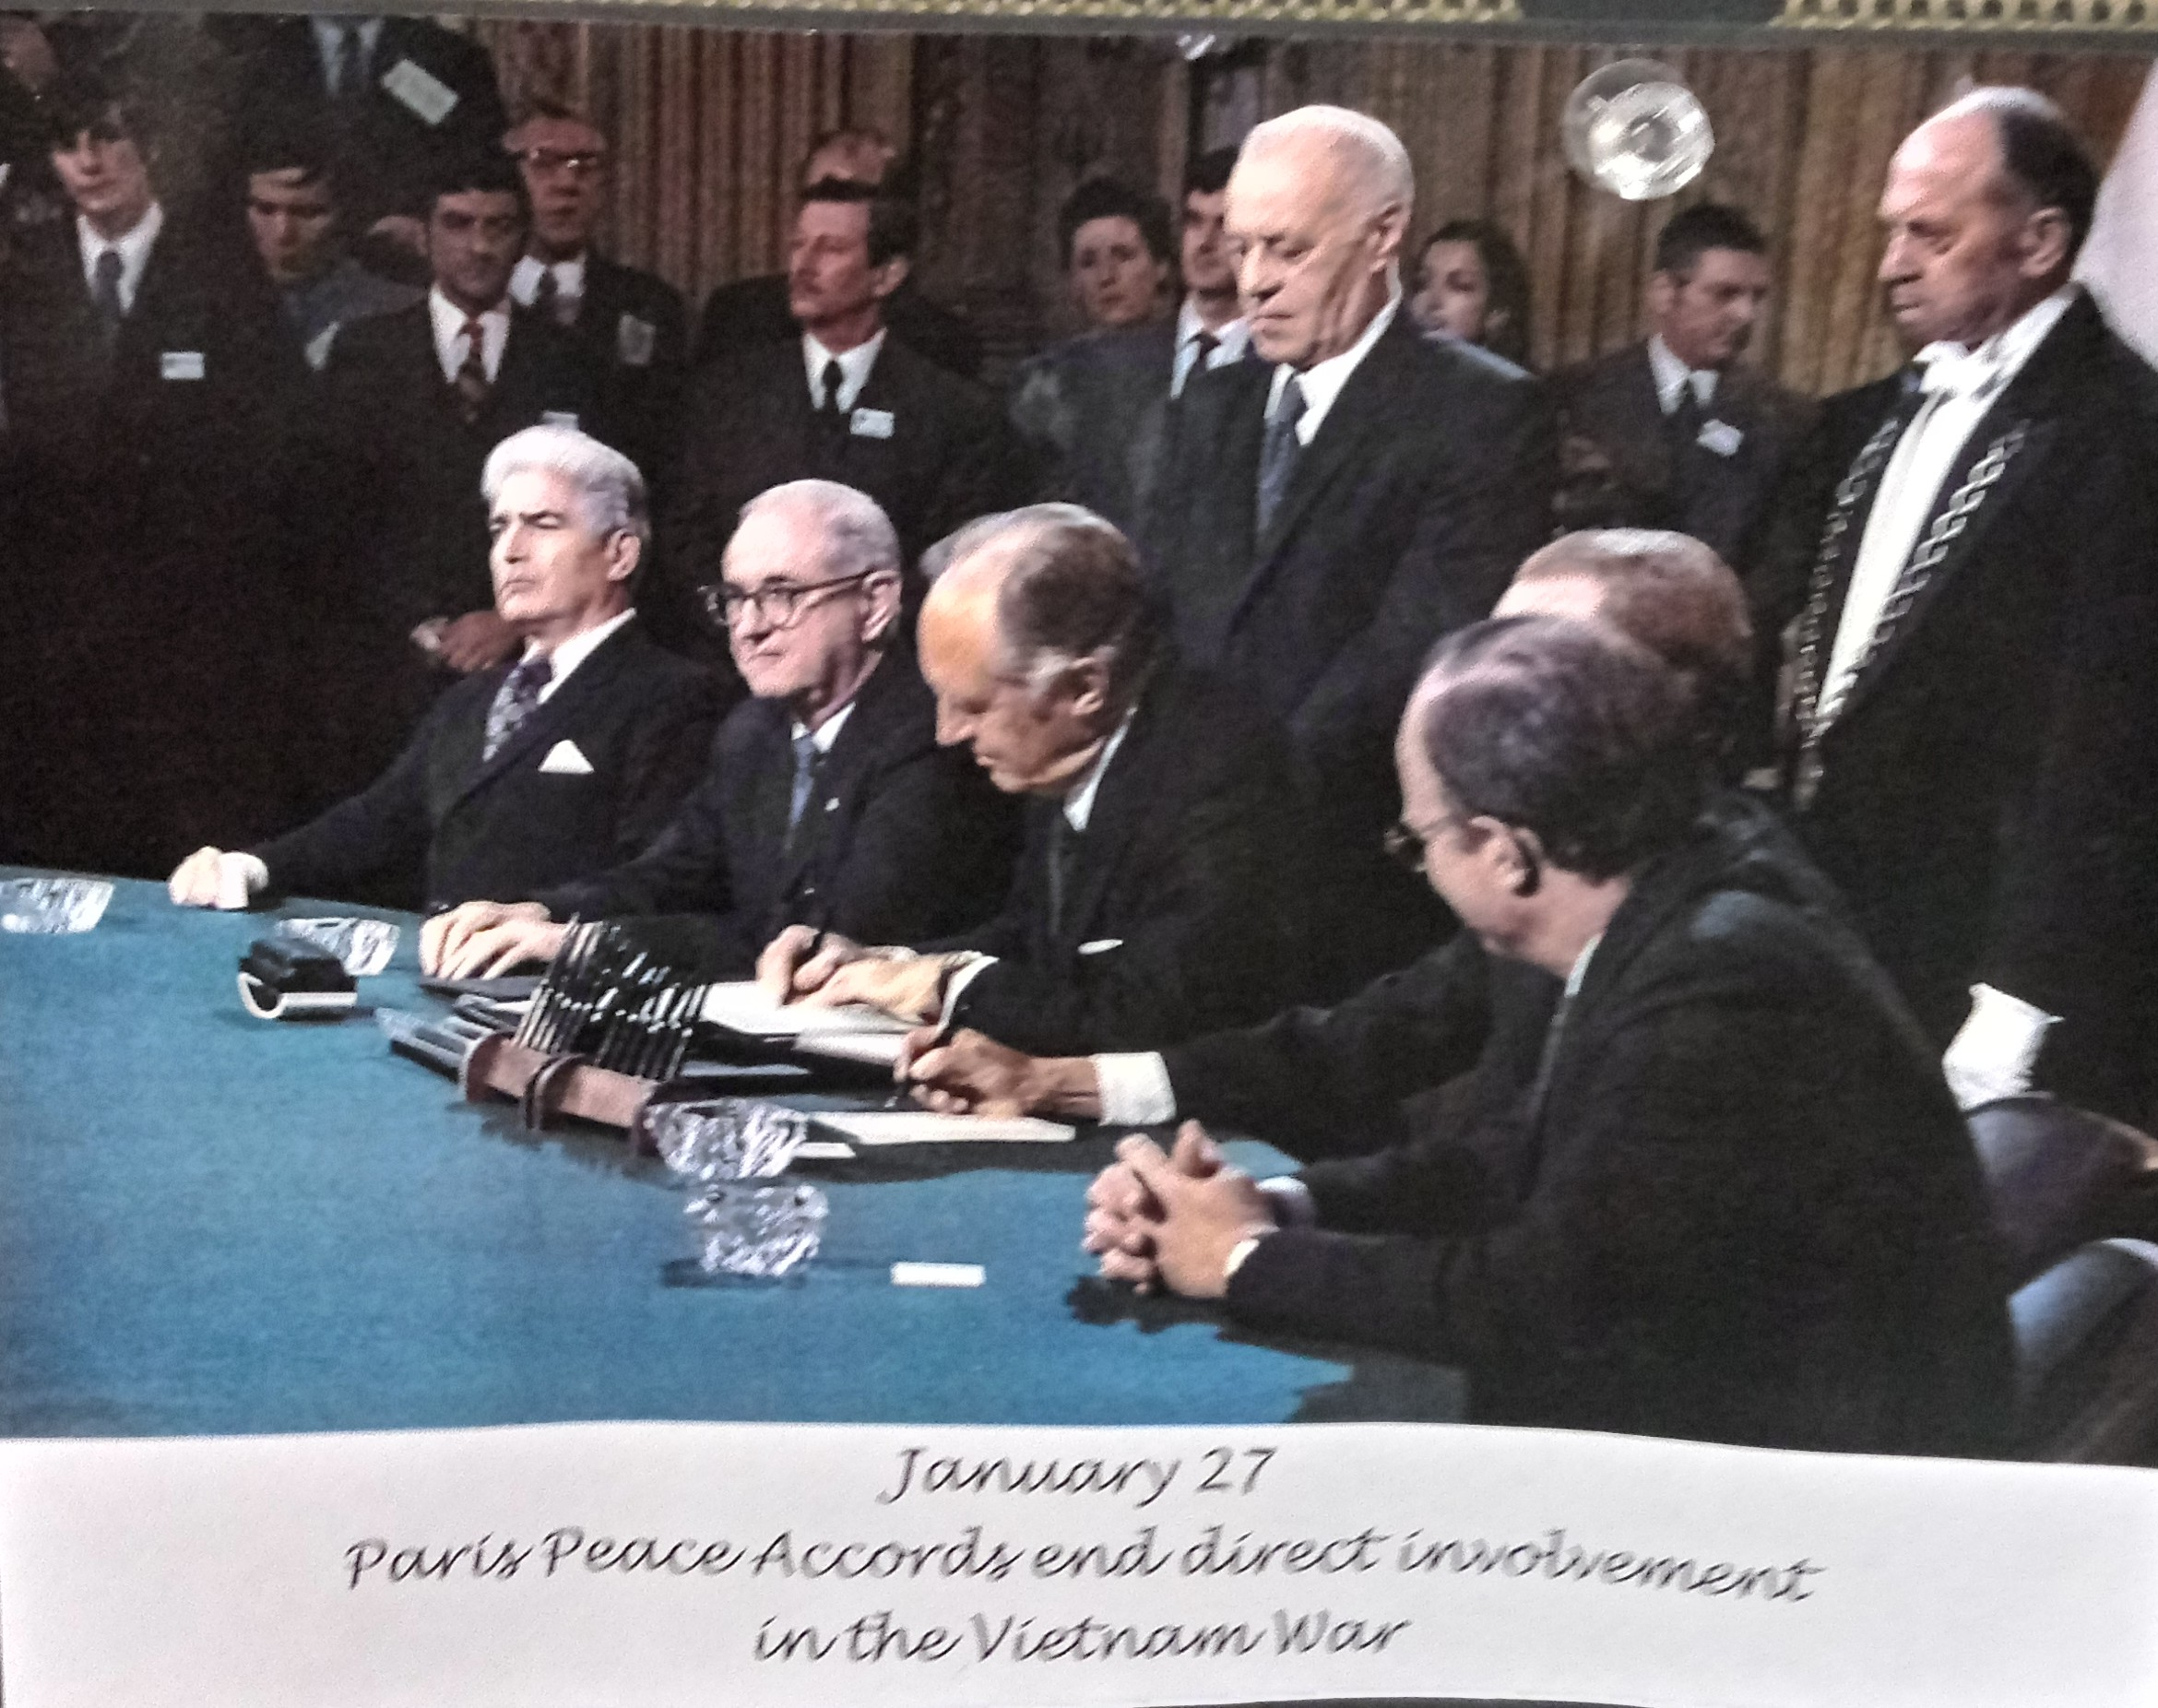 [Photograph of diplomats at a table, one of them signing a document.